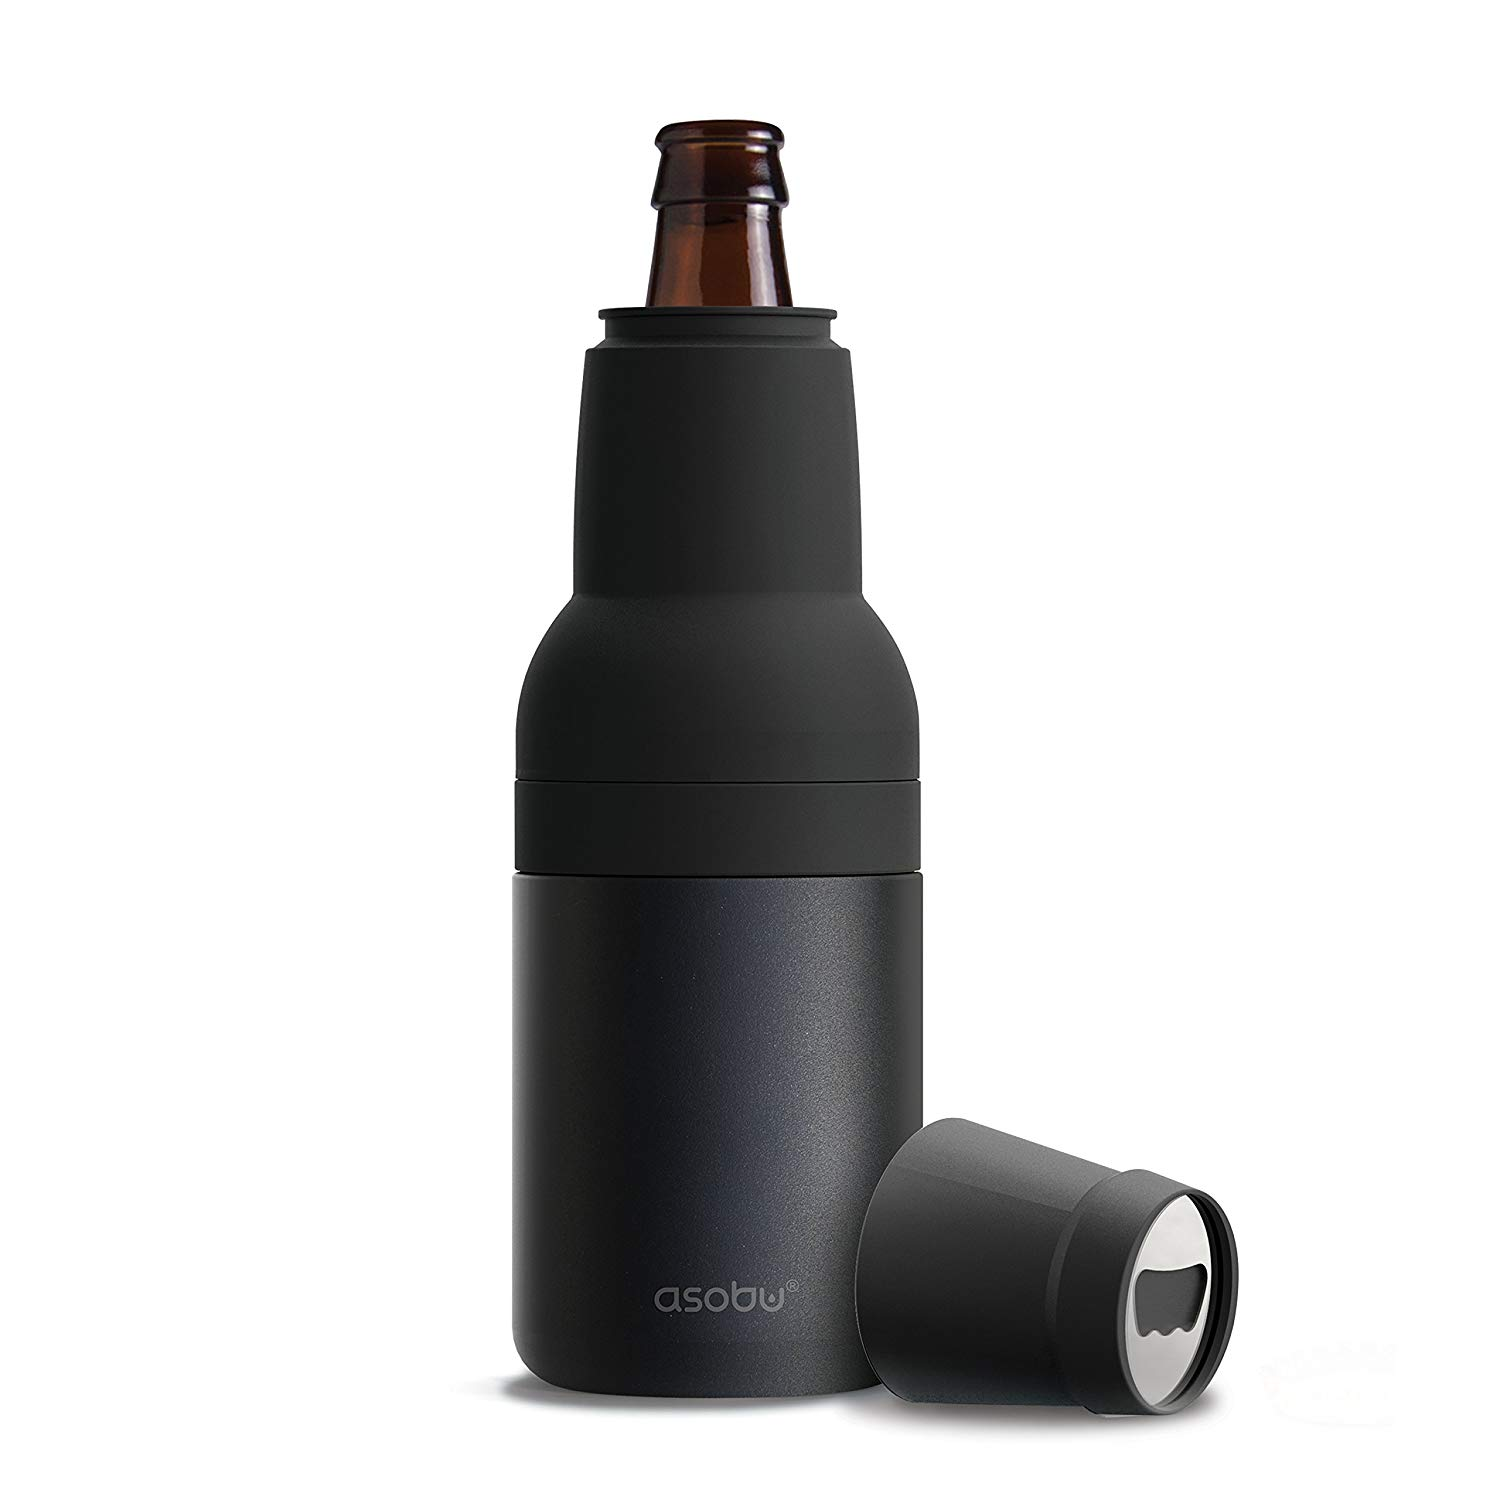 Asobu Frosty Beer 2 Go Vacuum Insulated Double Walled Stainless Steel Beer Bottle and Can Cooler